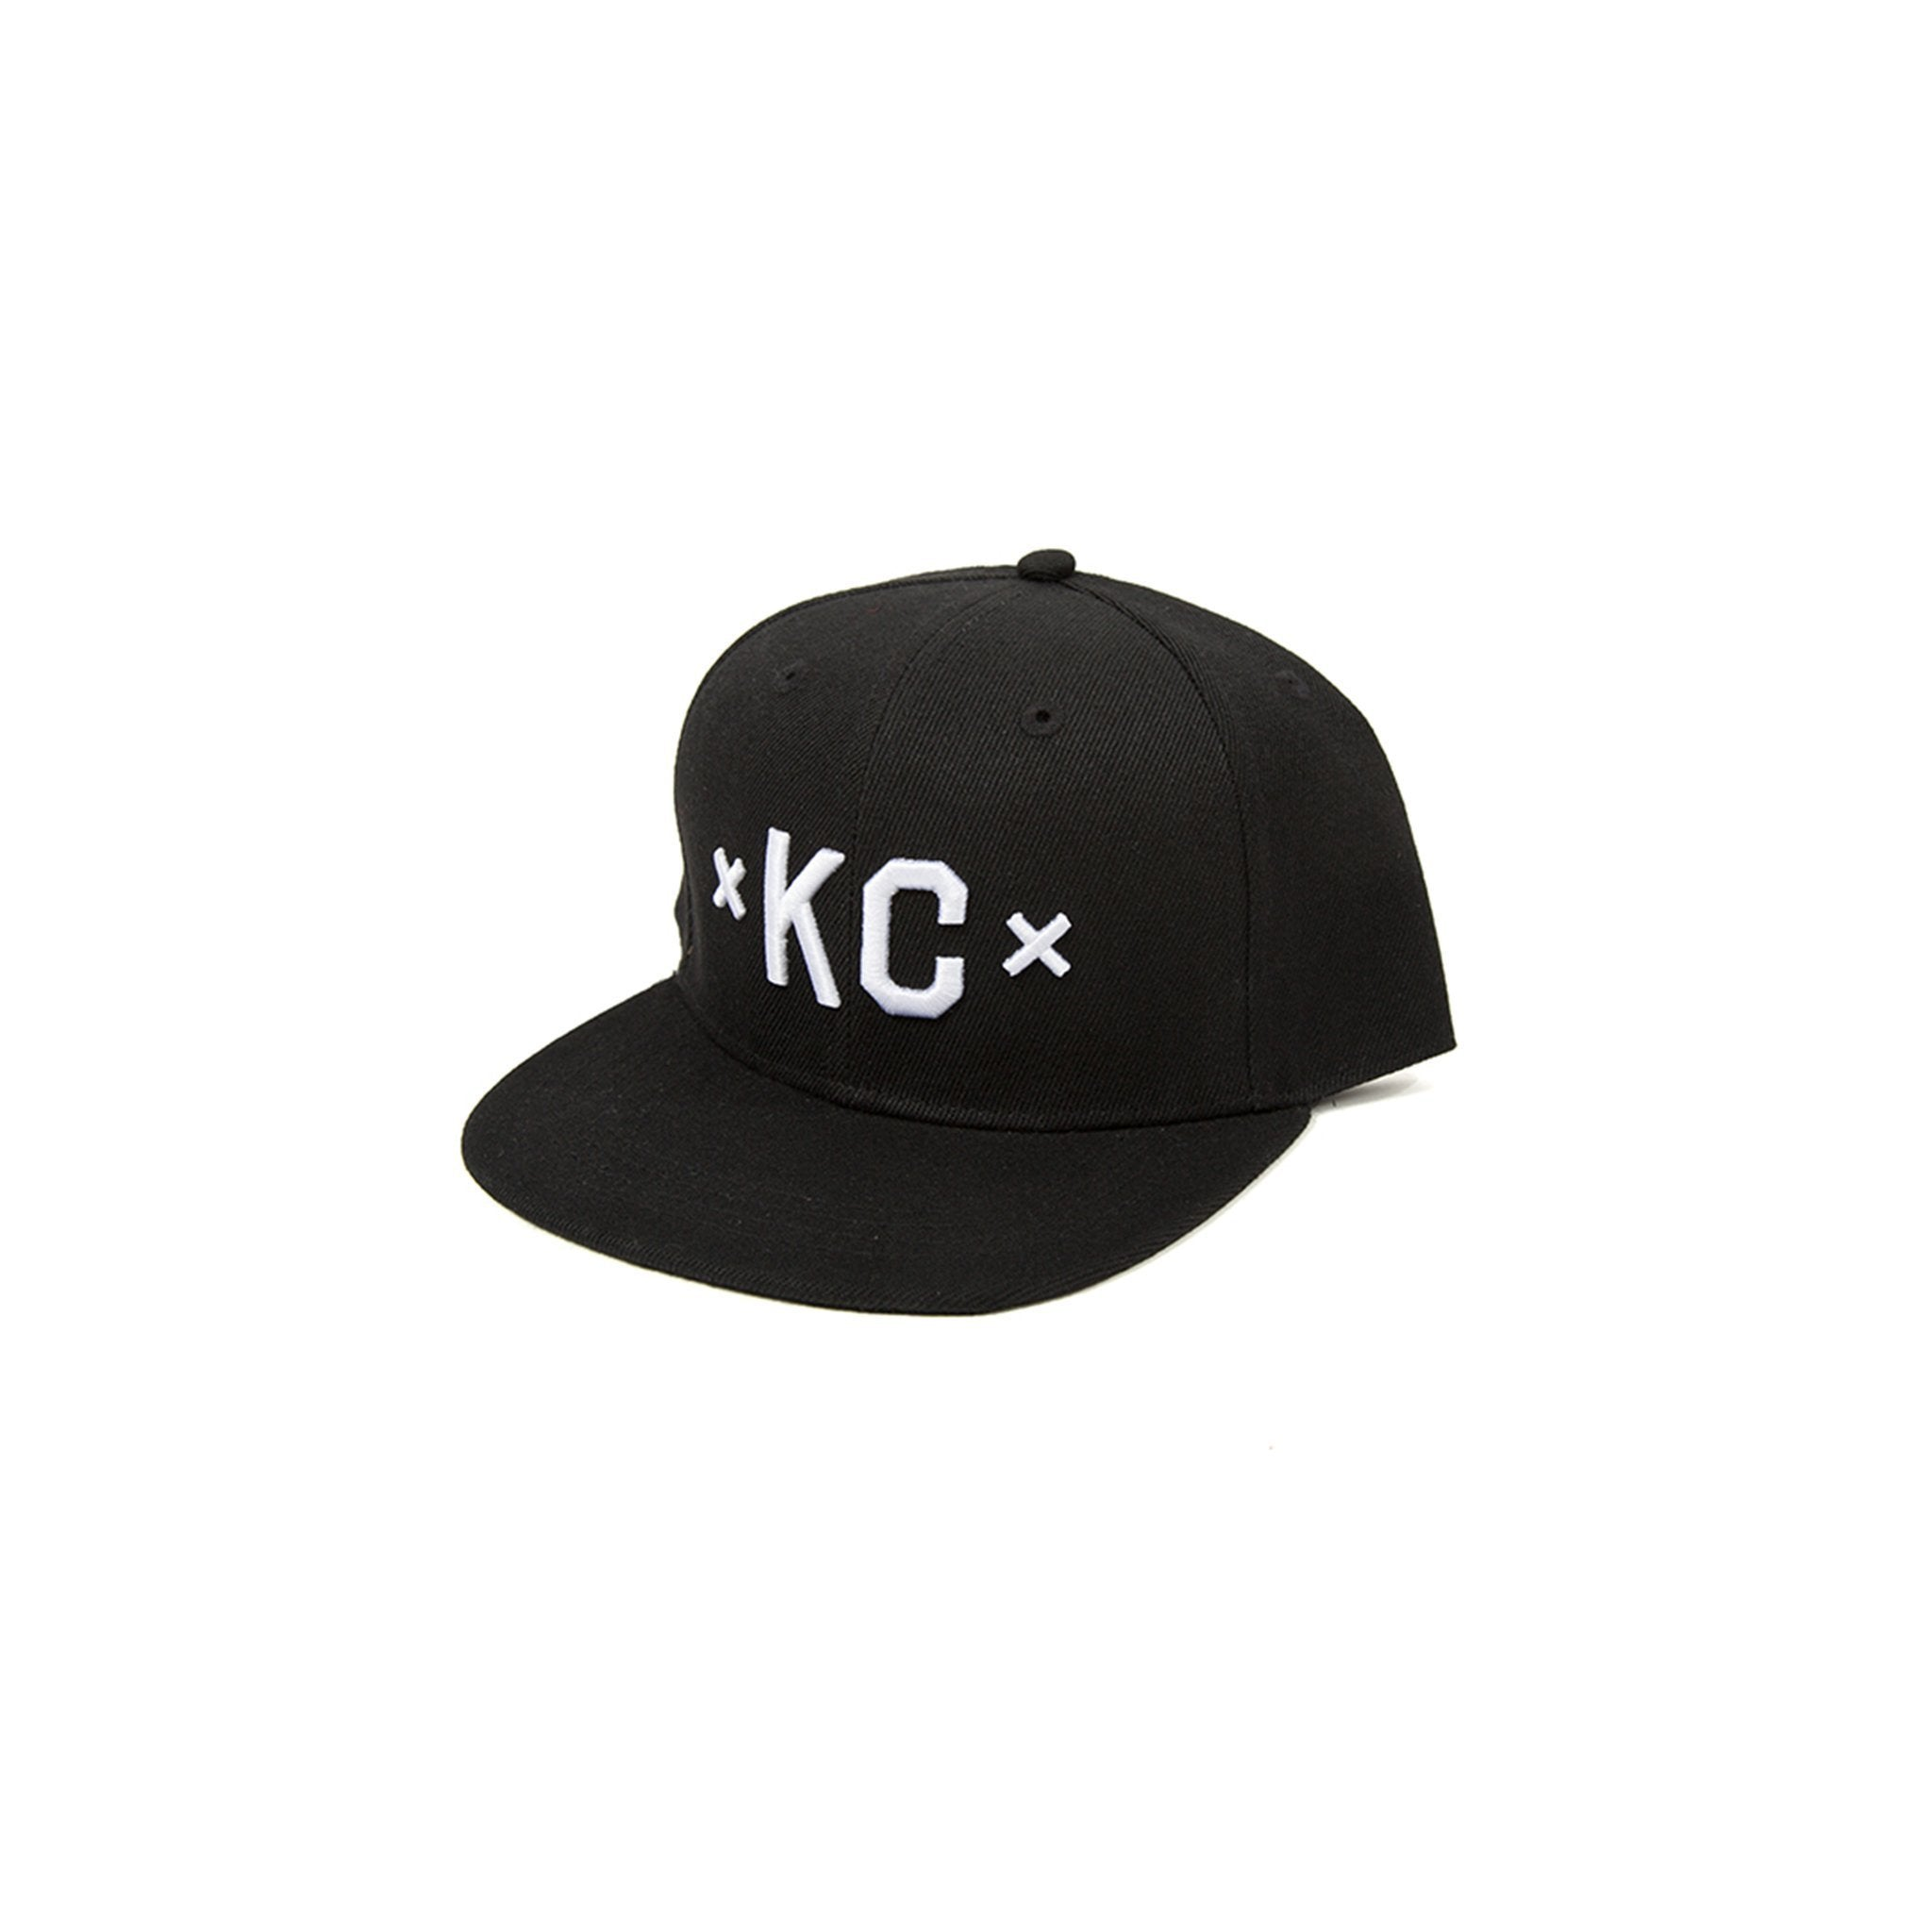 8be16a21 MADE URBAN APPAREL | KC SNAPBACK HAT